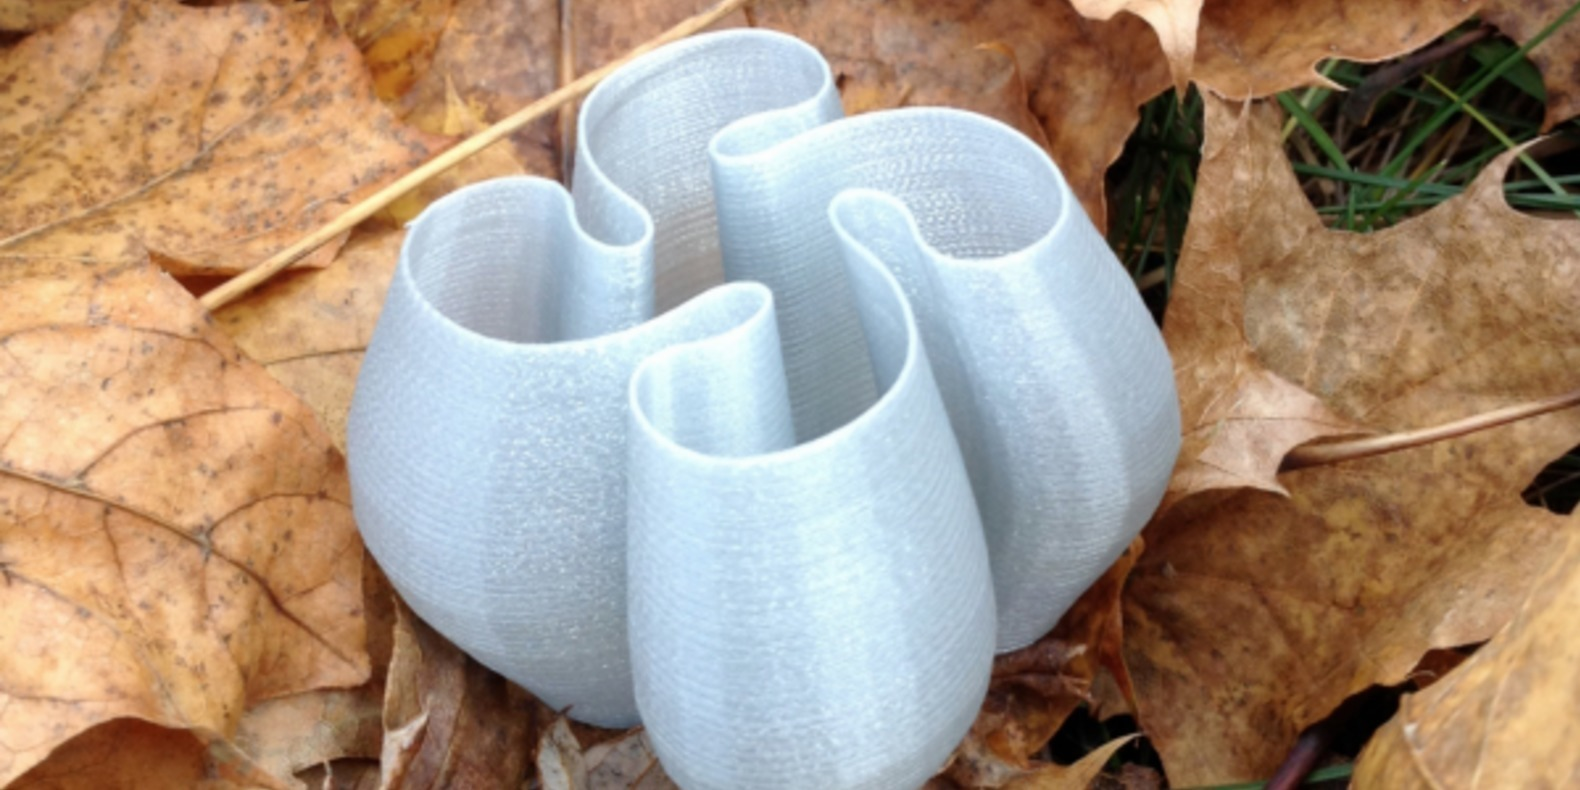 Vases printed in 3D